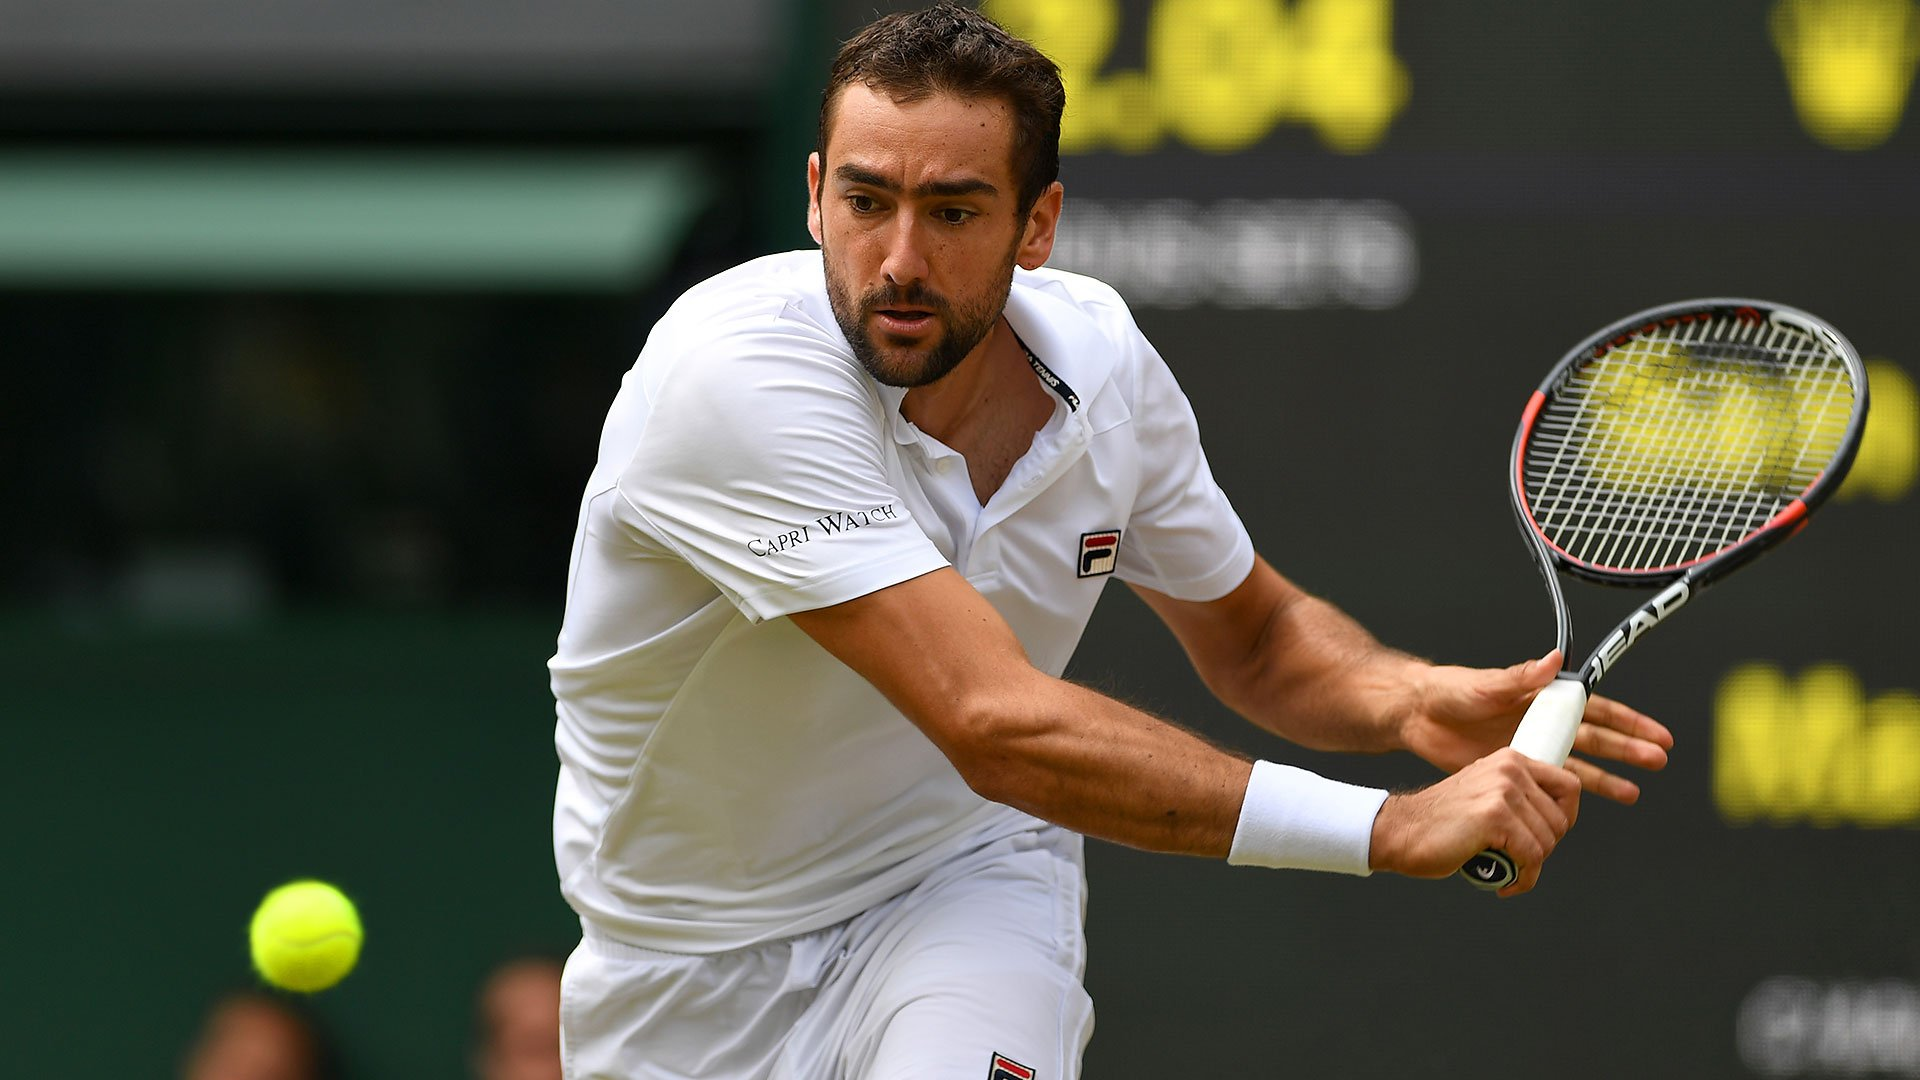 Cilic takes the 2nd set 6-4 vs Querrey to level their #Wimbledon semi-final. Follow Along: https://t.co/ftuBIla5AL https://t.co/X6LJQ0osUZ